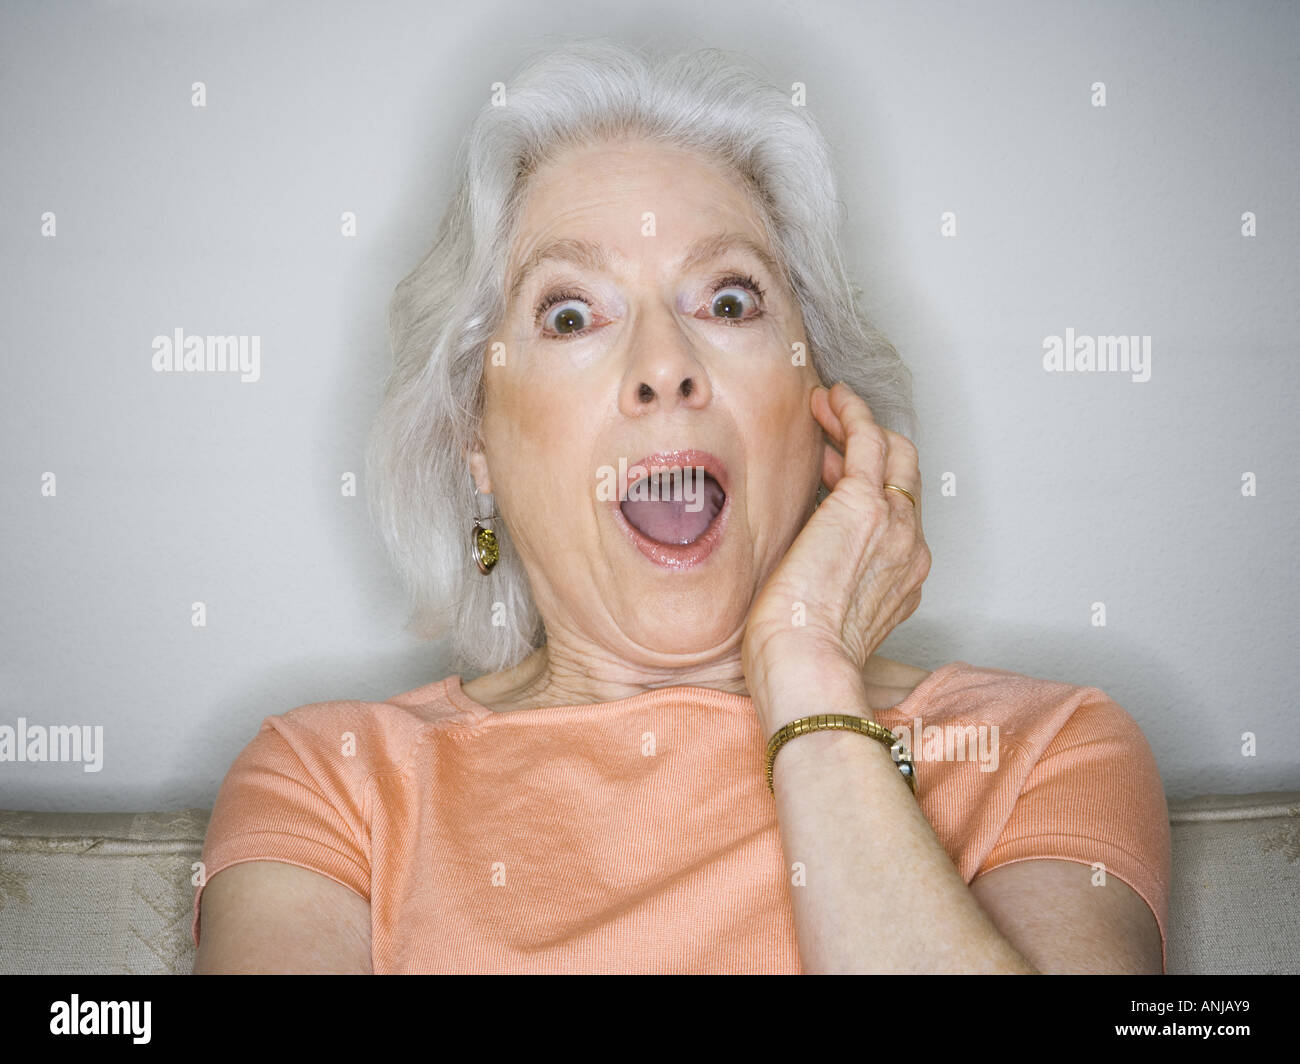 Close-up of a horrified senior woman with her mouth open